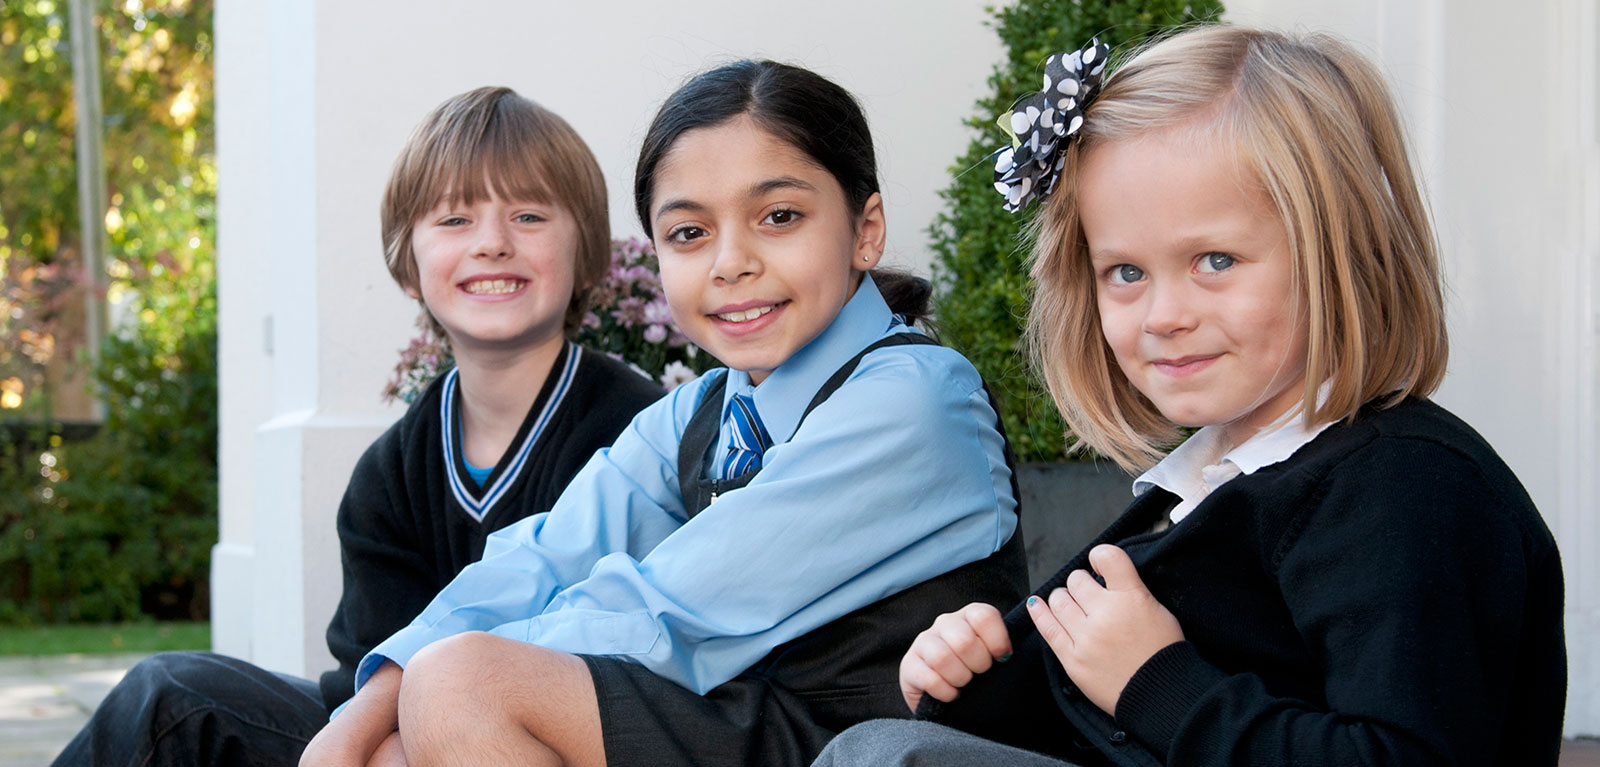 photograph of three primary school children in different school uniforms